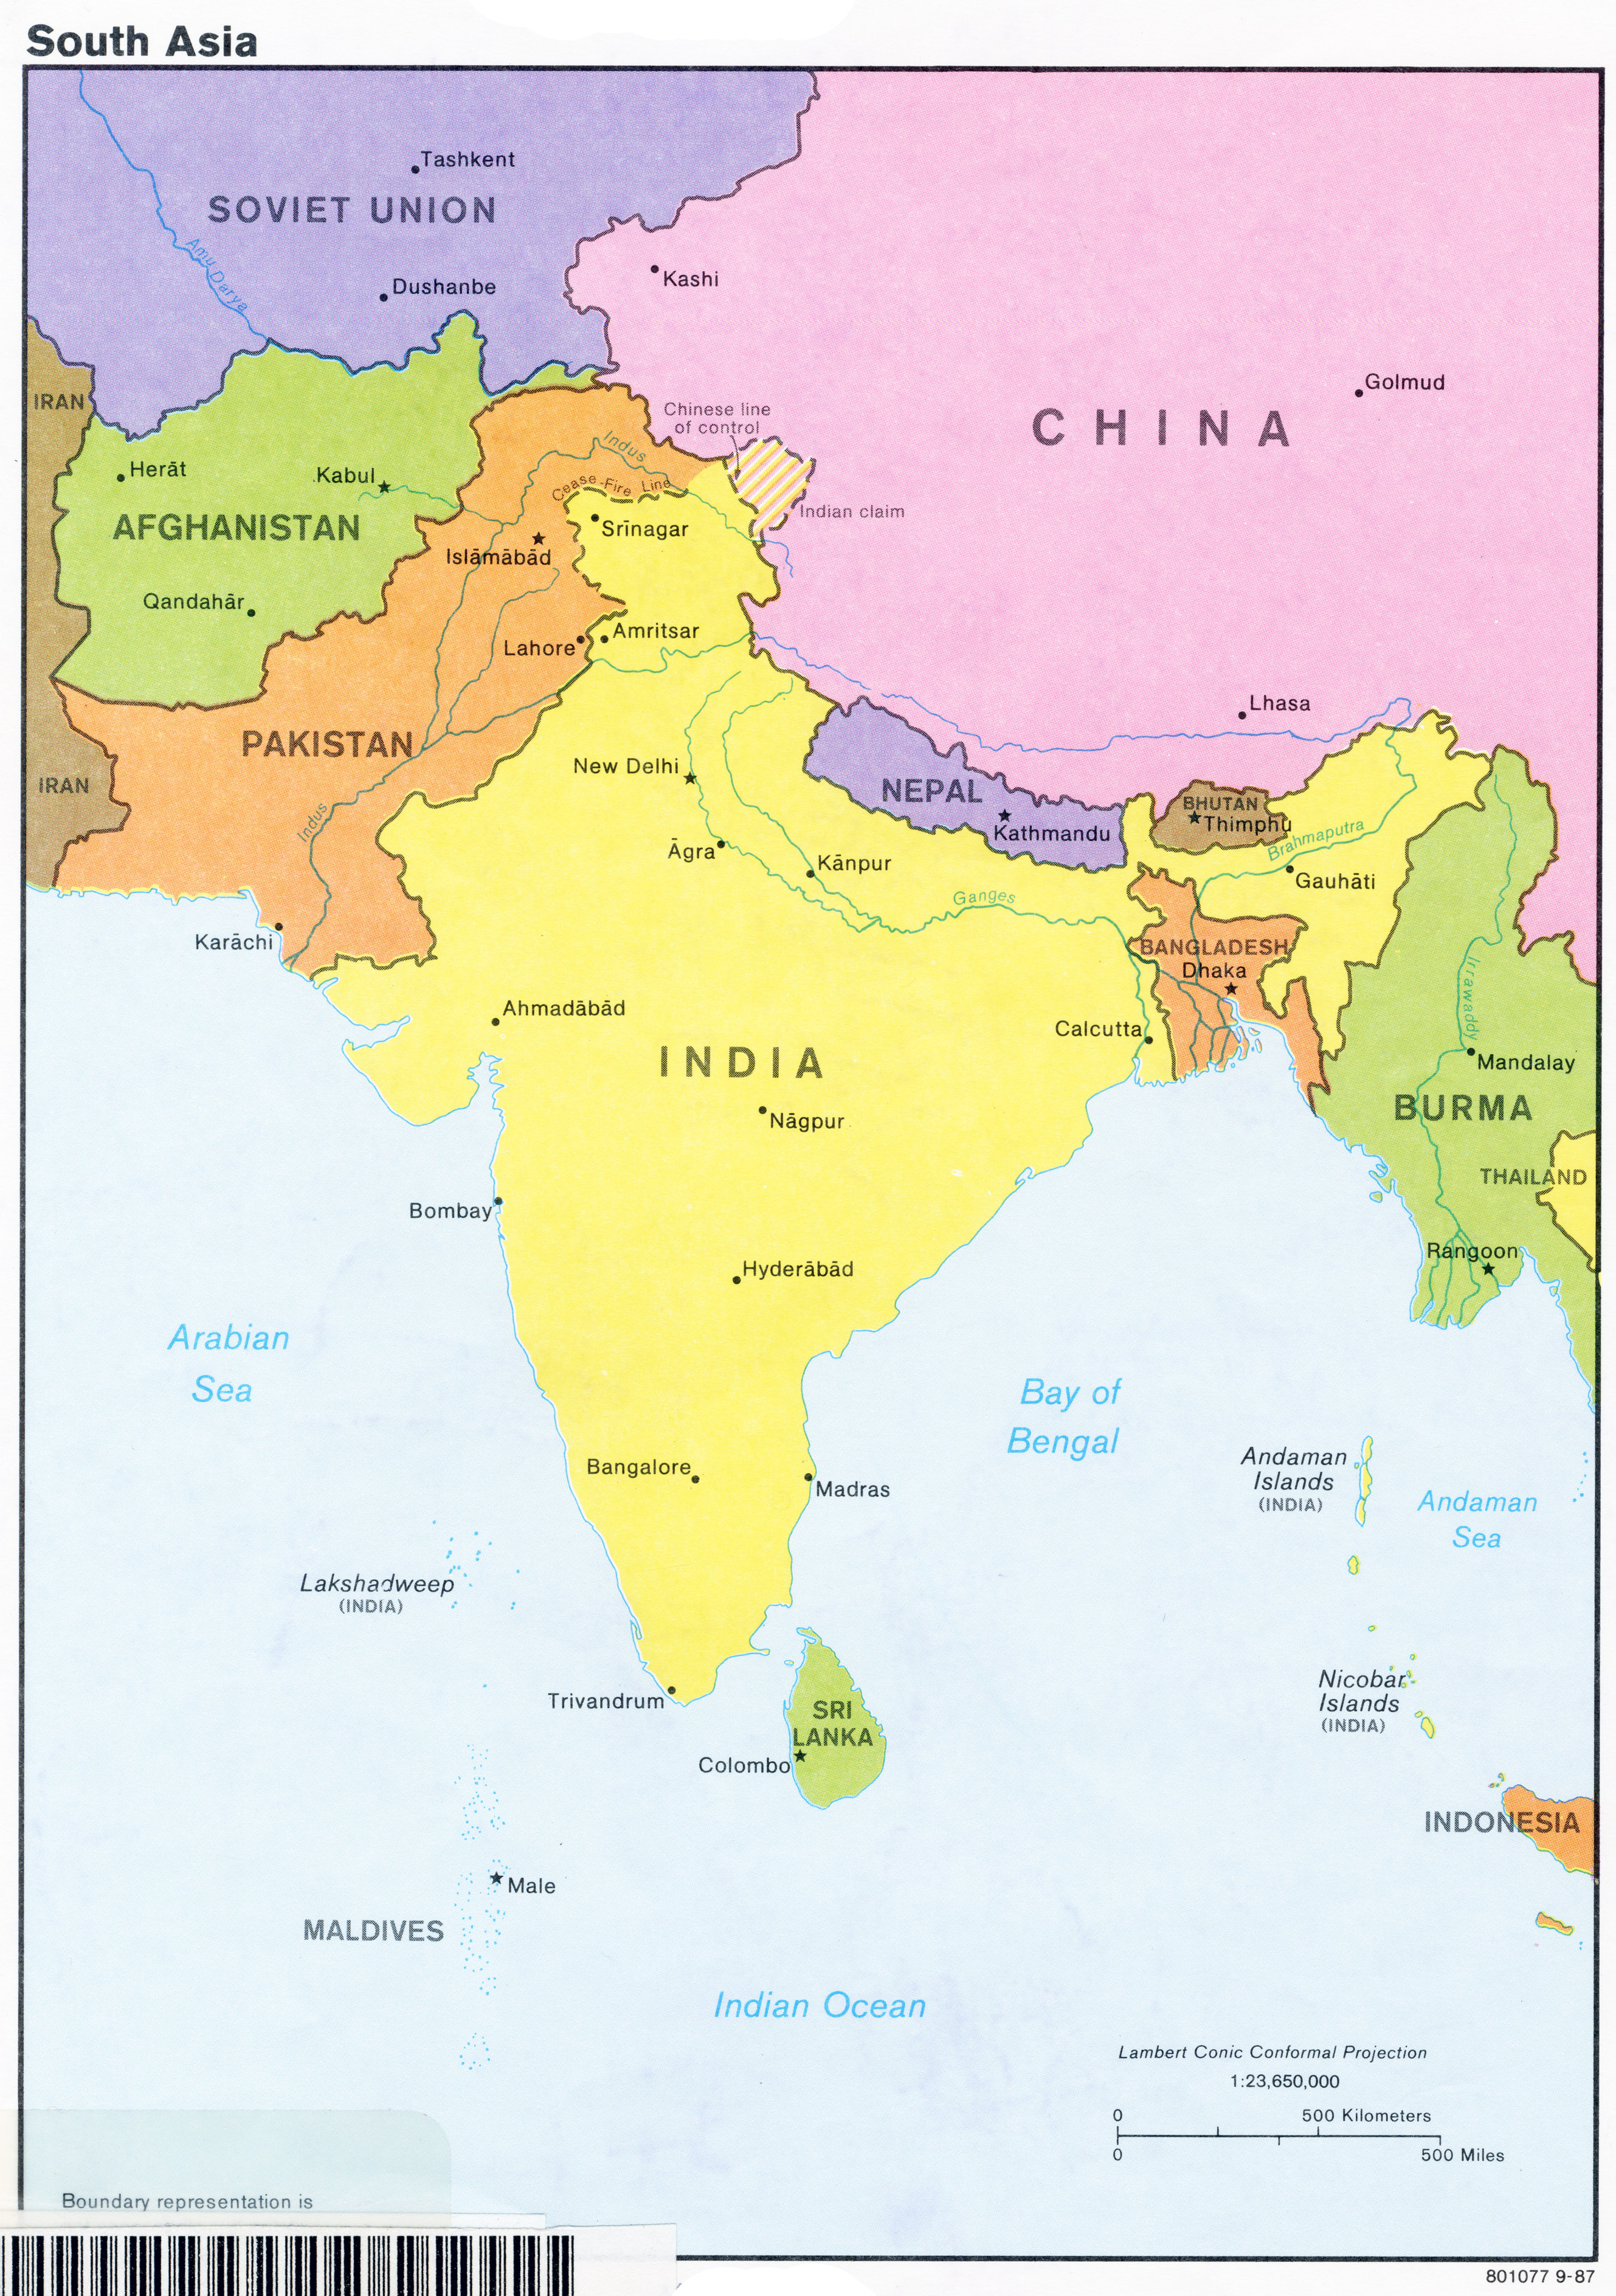 Maps Update 1204940 Southern Asia Map Southern Asia Political Map 78 Re